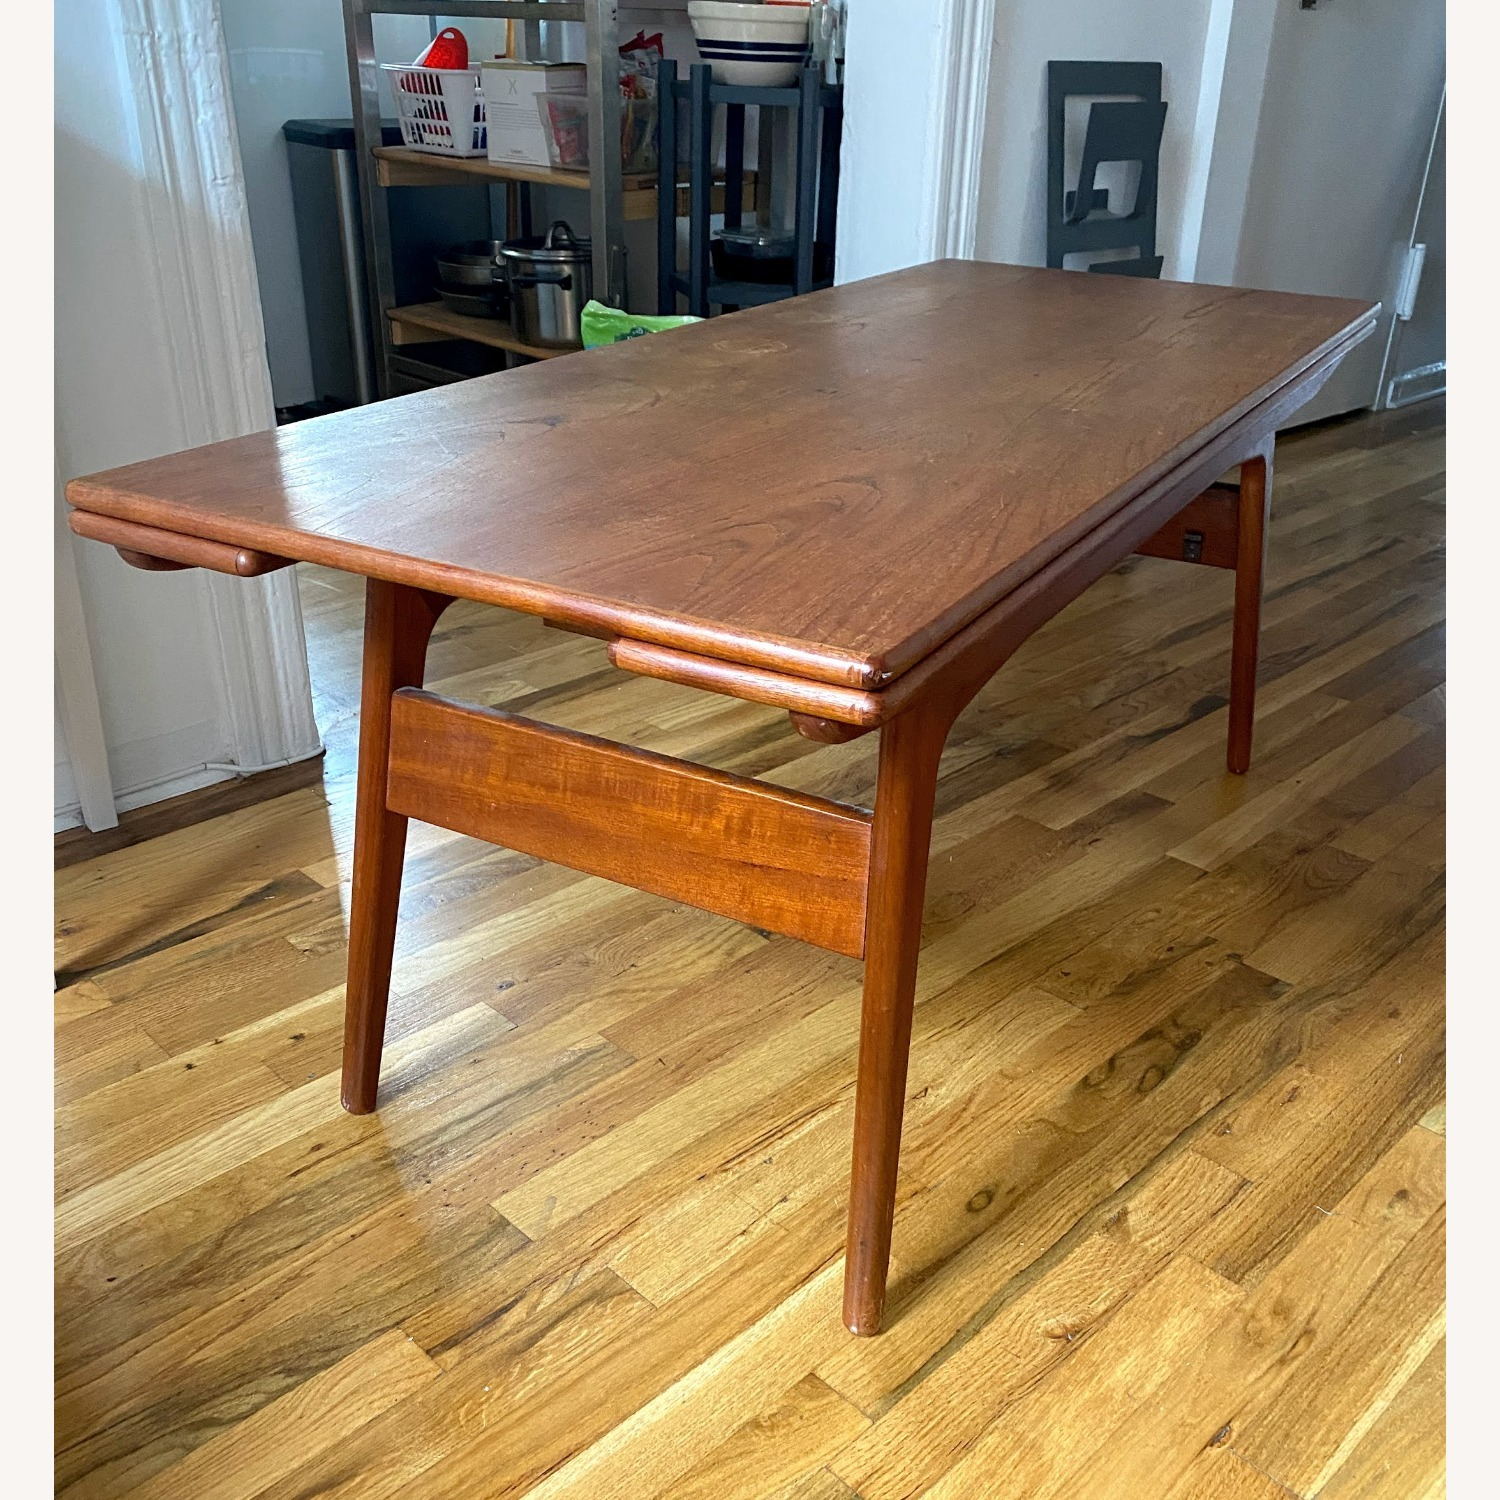 Metamorphic Danish Modern Coffee / Work Table - image-2